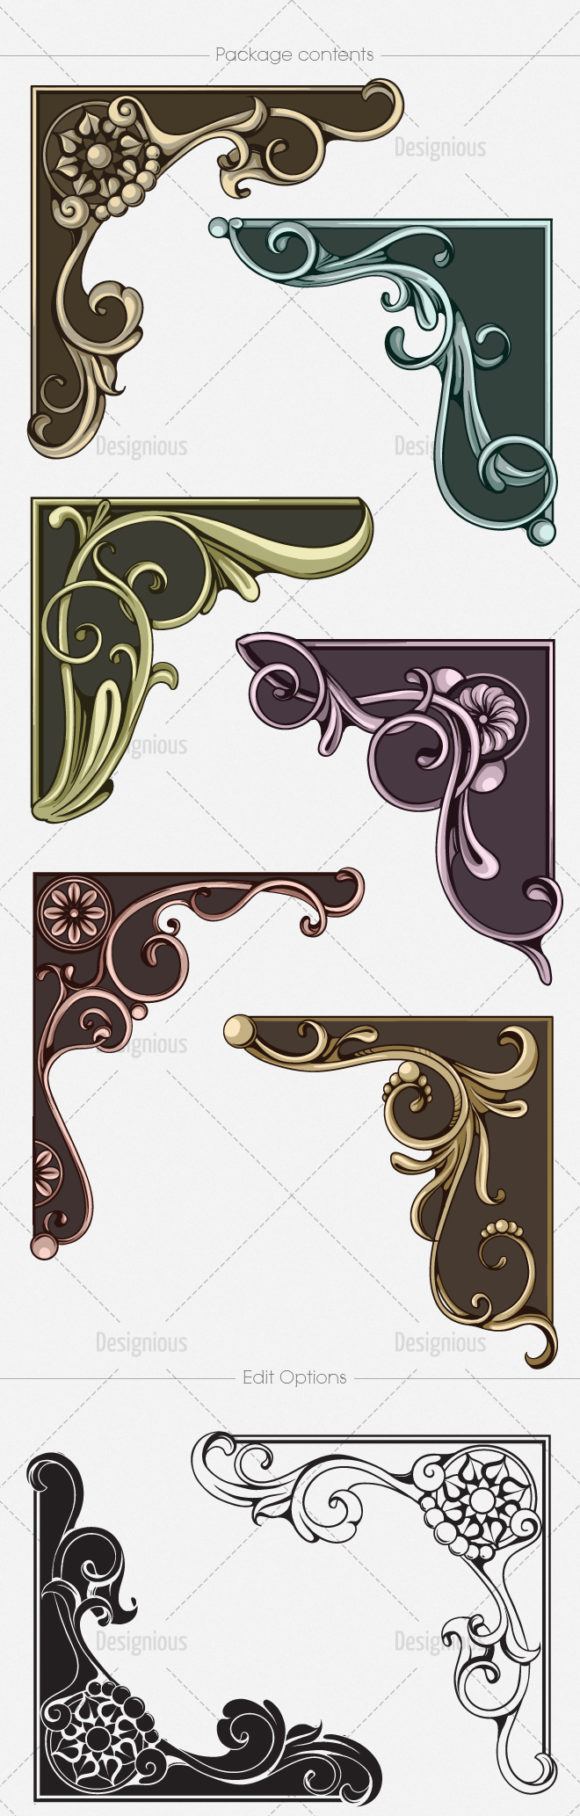 Floral Vector Pack 145 6